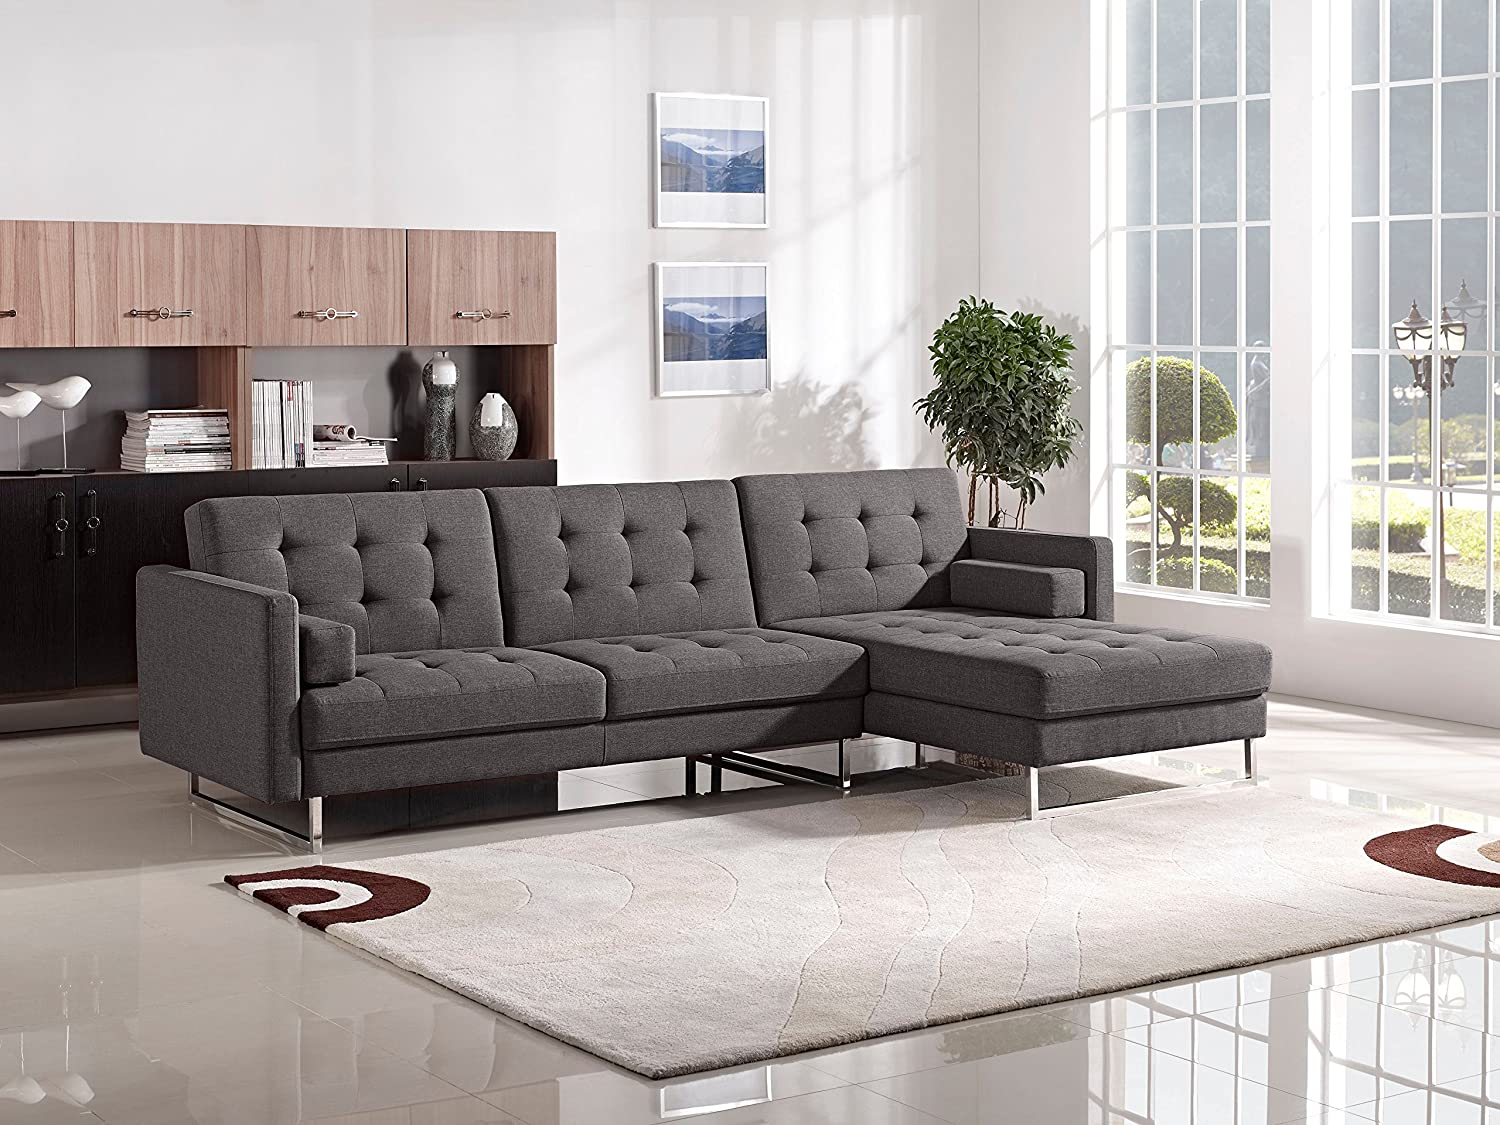 Amazon.com Opus Convertible Tufted RF Chaise Sectional by Diamond Sofa - GREY Includes Left Face Sofa Right Face Chaise- # OPUSRFSECTGR Kitchen u0026 Dining : grey chaise sectional - Sectionals, Sofas & Couches